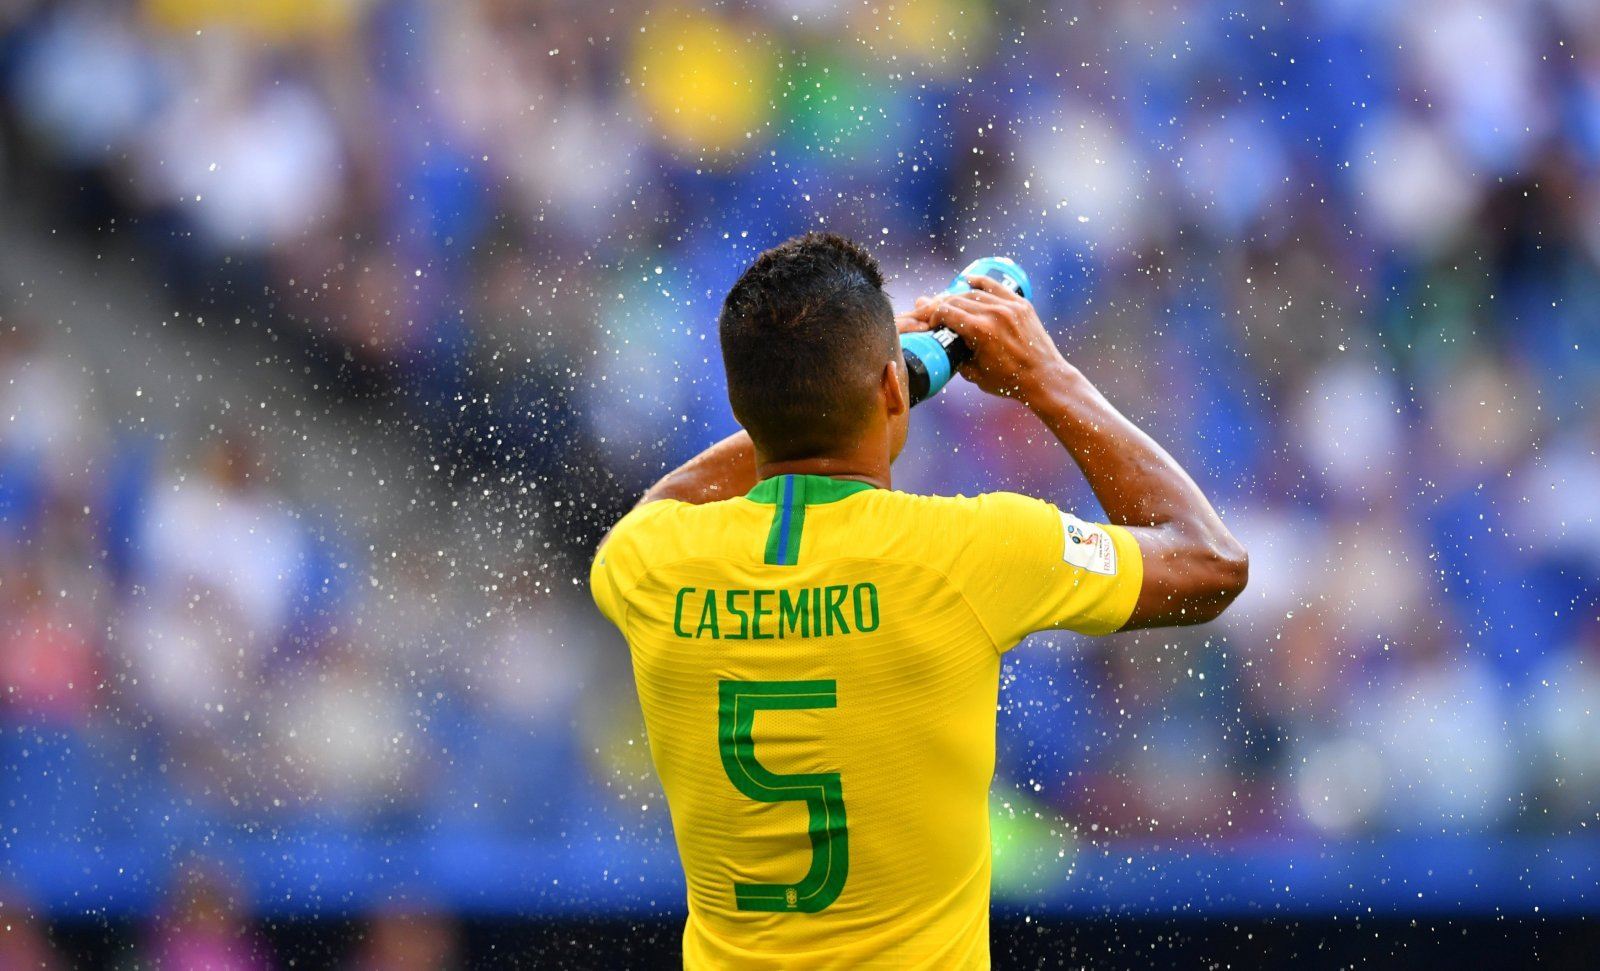 Manchester City could really do with signing Casemiro this summer